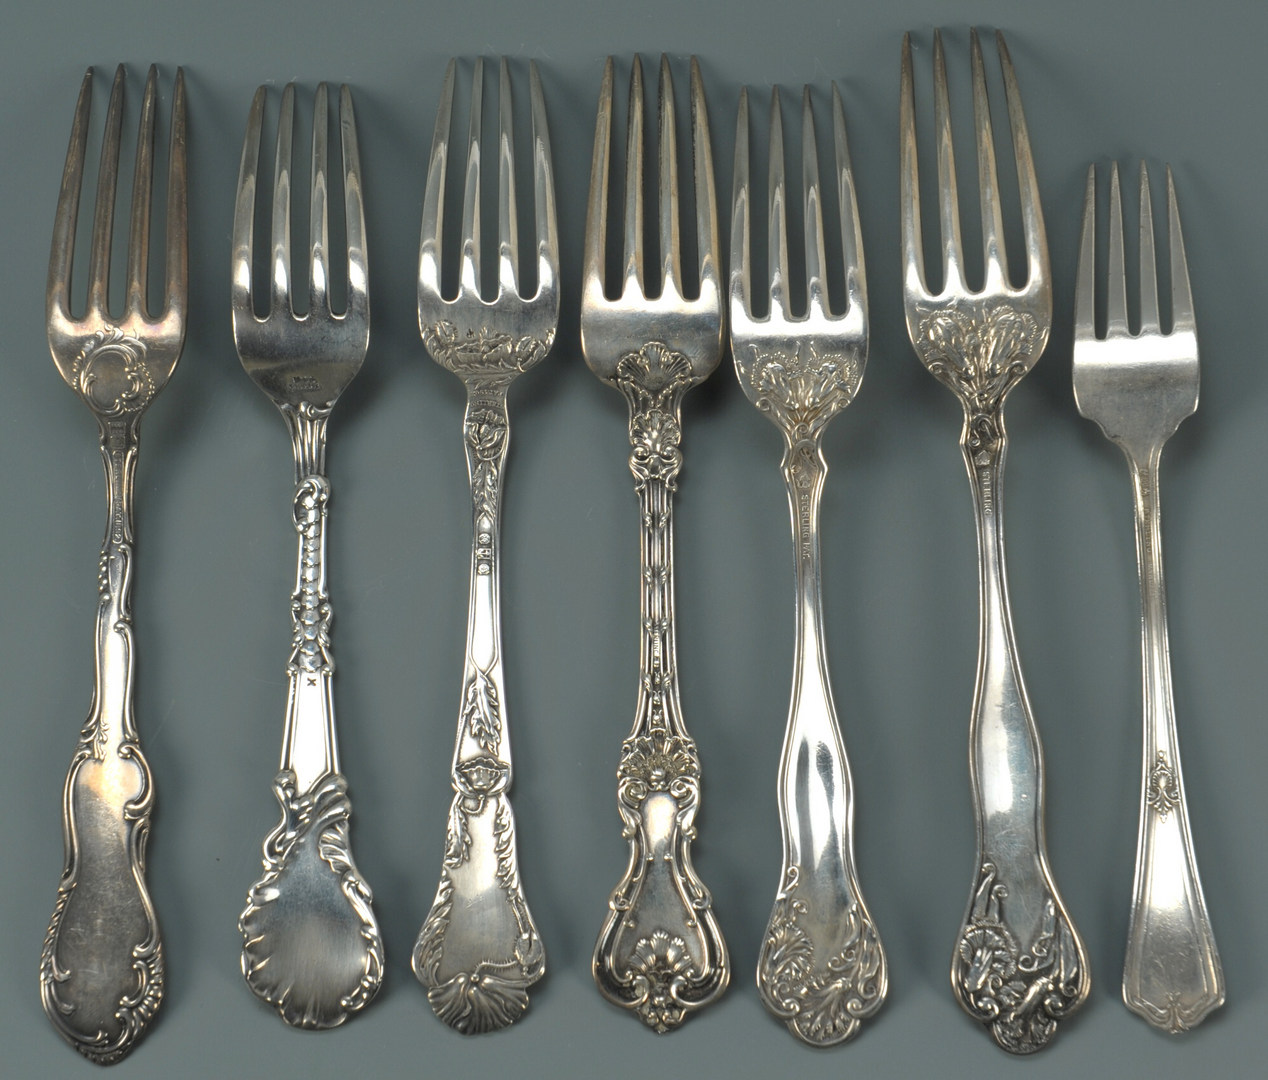 Lot 430: 38 pcs assorted sterling flatware, early patterns